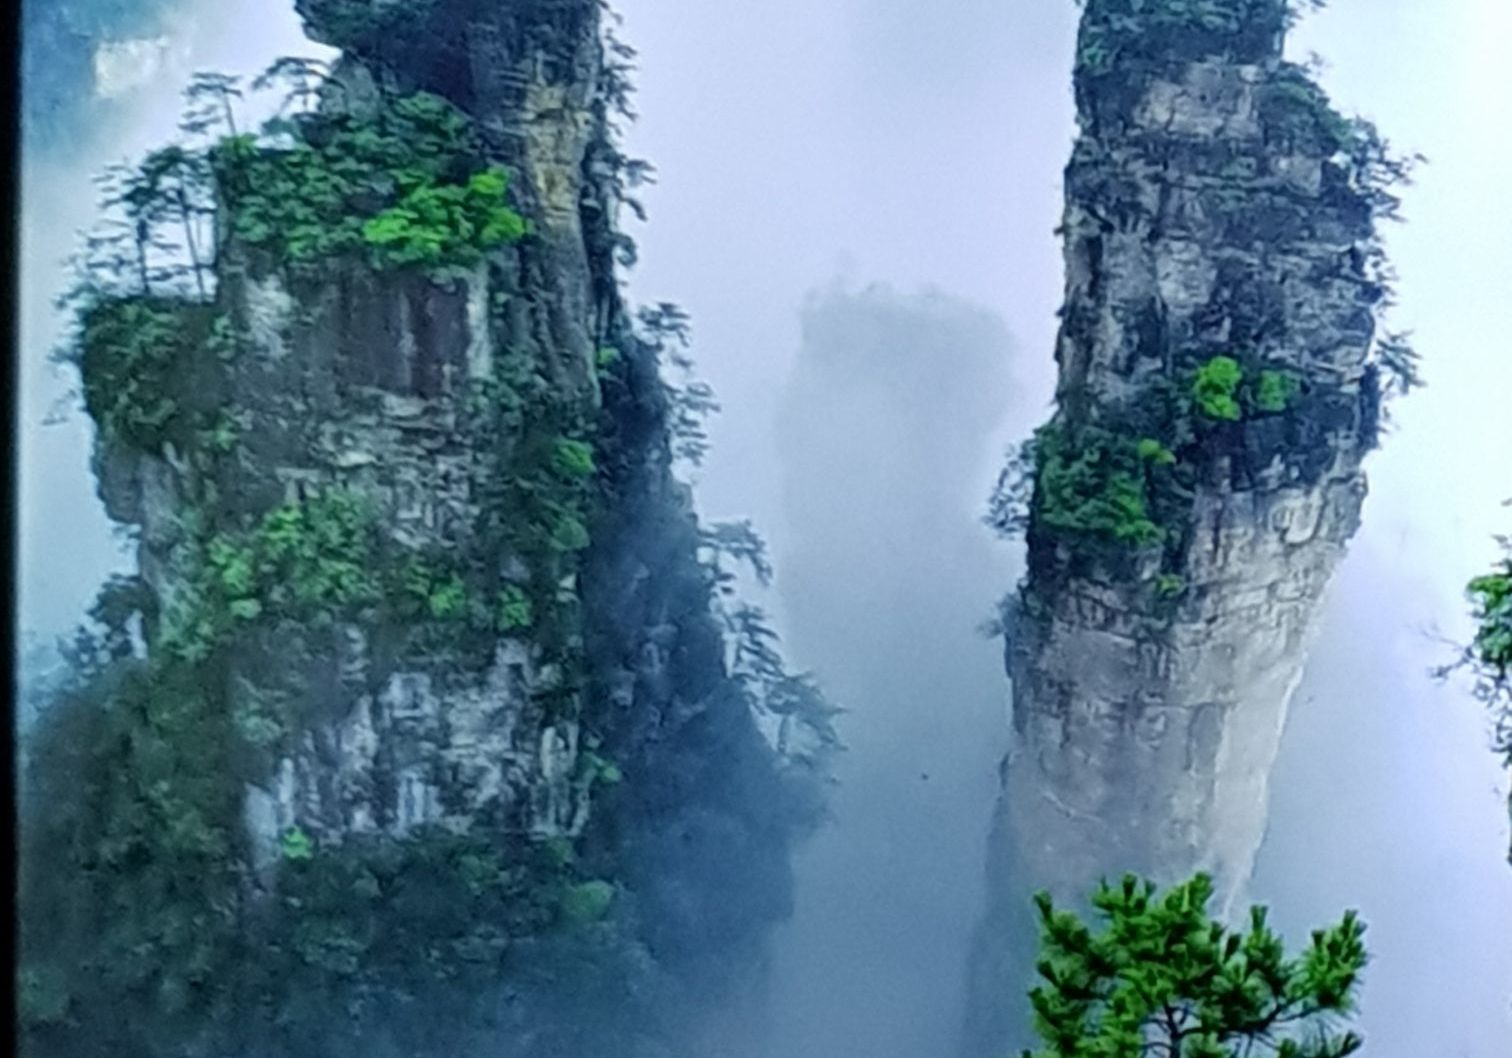 Unique mountains at Tianzi Mountain, Zhangjiajie